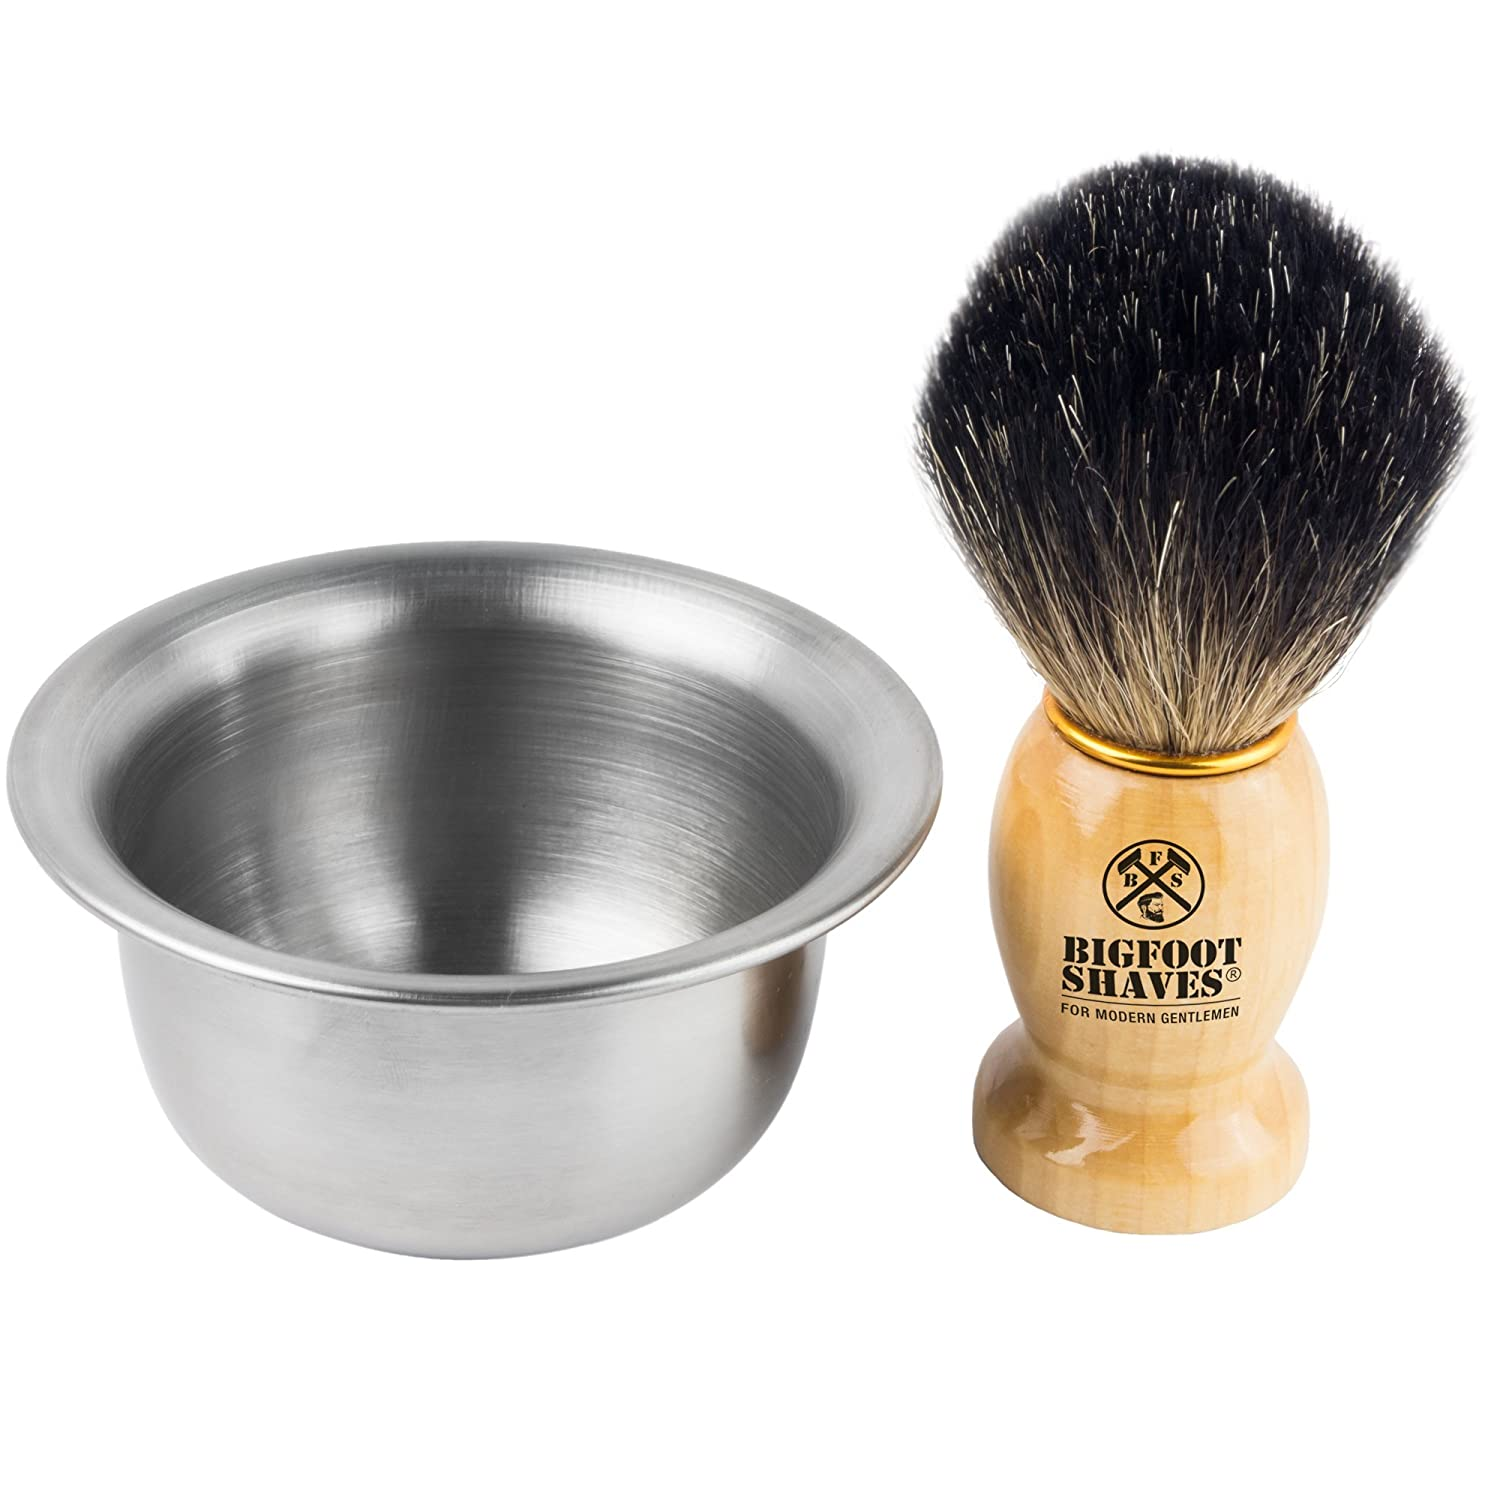 100% Pure Badger Shaving Brush and Bowl. For Guaranteed Best shave for life. Use for Old fashioned Double edge Saftey Razor and Multi Blade Razor- Made for Modern Gentlemen (Silver) Bigfoot Shaves